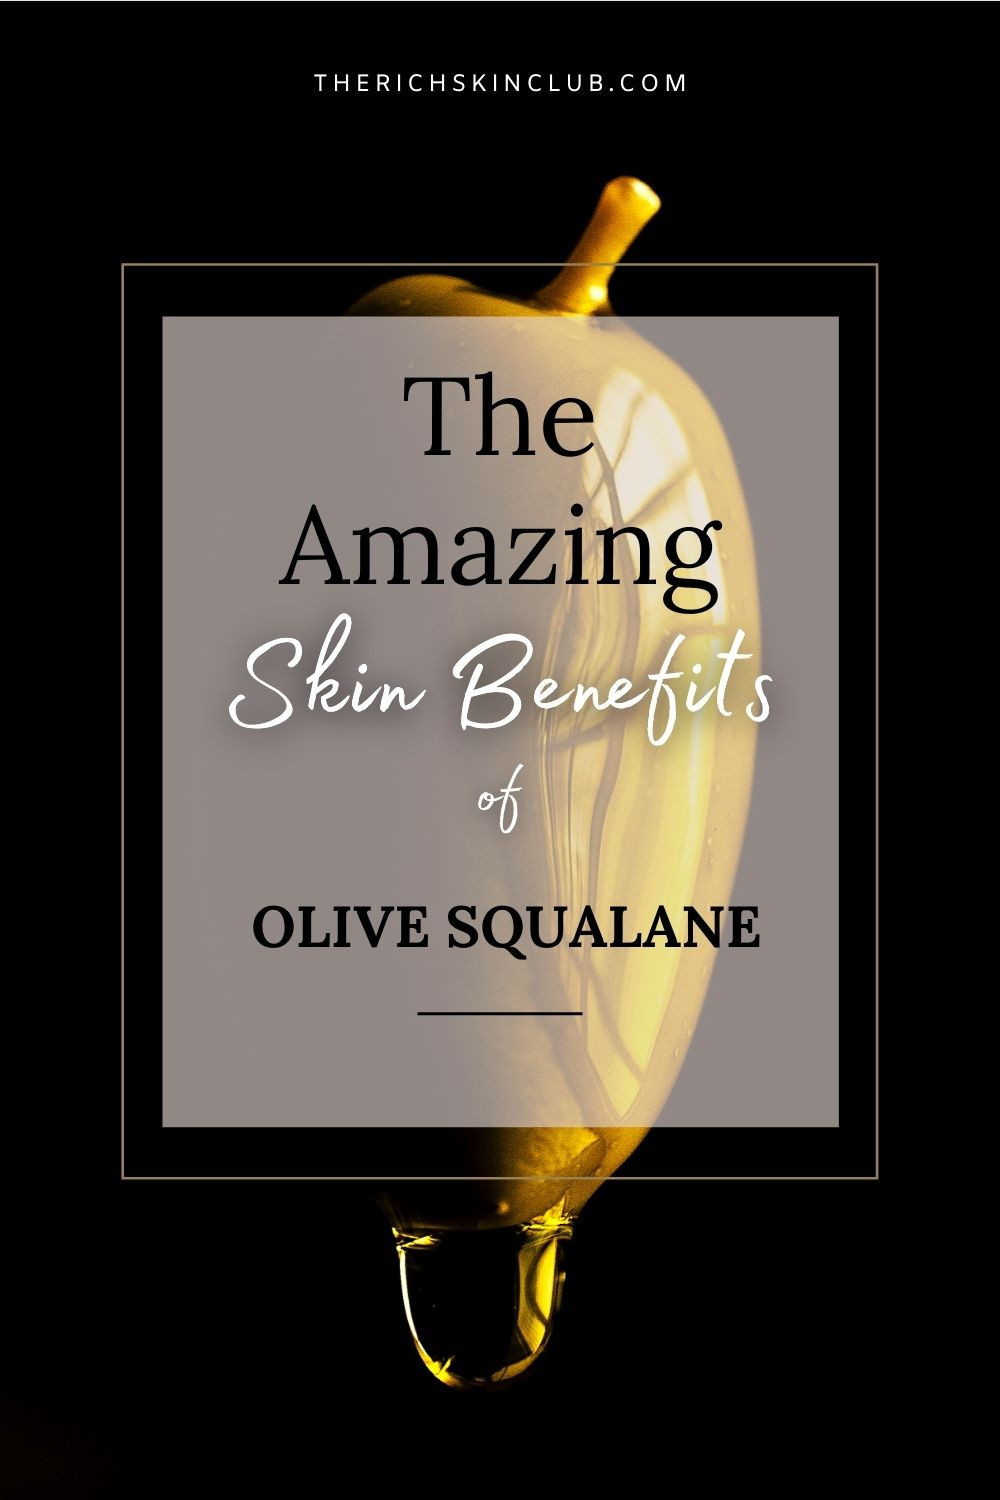 Nicknamed 'Natures Facelift' Olive Squalane is a botanical lipid that mirrors human lipids in molecular structure and weight. This makes it a GREAT anti-aging skin care ingredient! By replenishing the skin with lipids, squalane restores & repairs the skin barrier. Unlike any other oil, it feels more like serum with its clear, lightweight consistency. Click the pin to learn more and get my top clean beauty picks! #squalaneoilbenefits #thebenefitsofsqualane #squalanebenefitsforskin